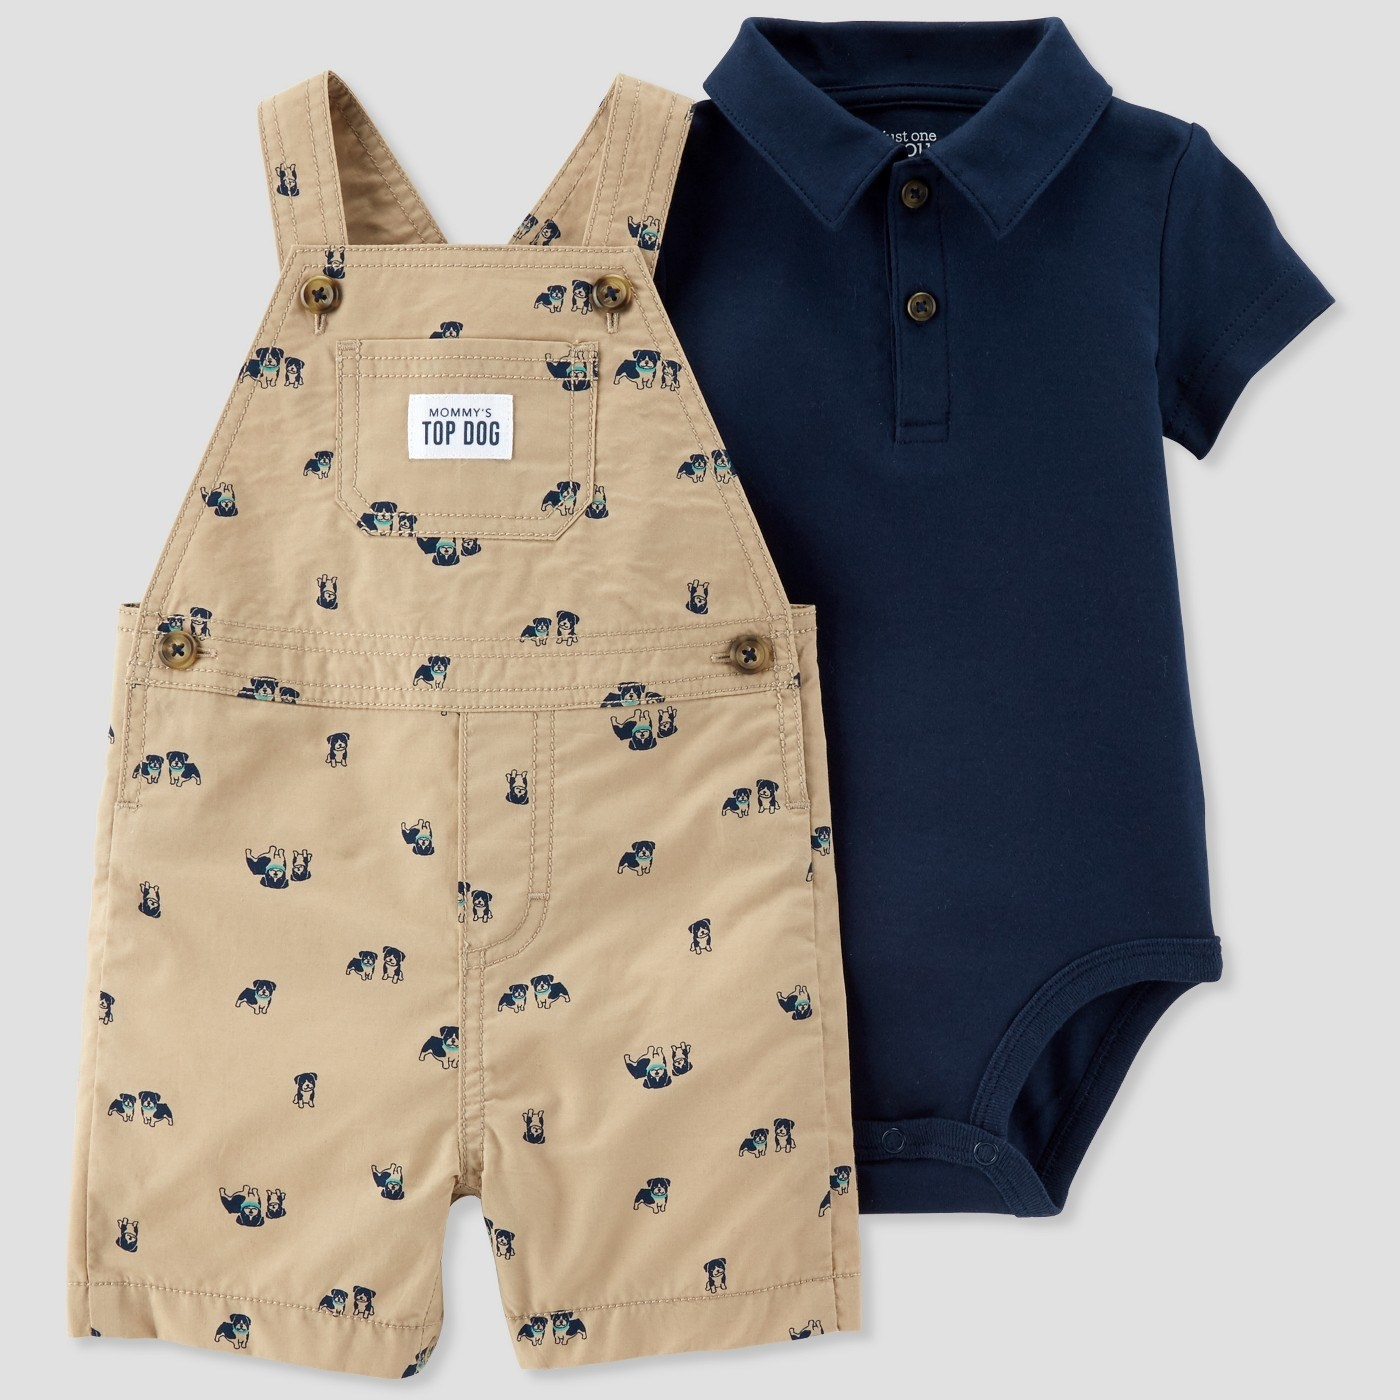 Get the set (including overalls and collared onesie) from Target for $12.99 (available in sizes NB-24).